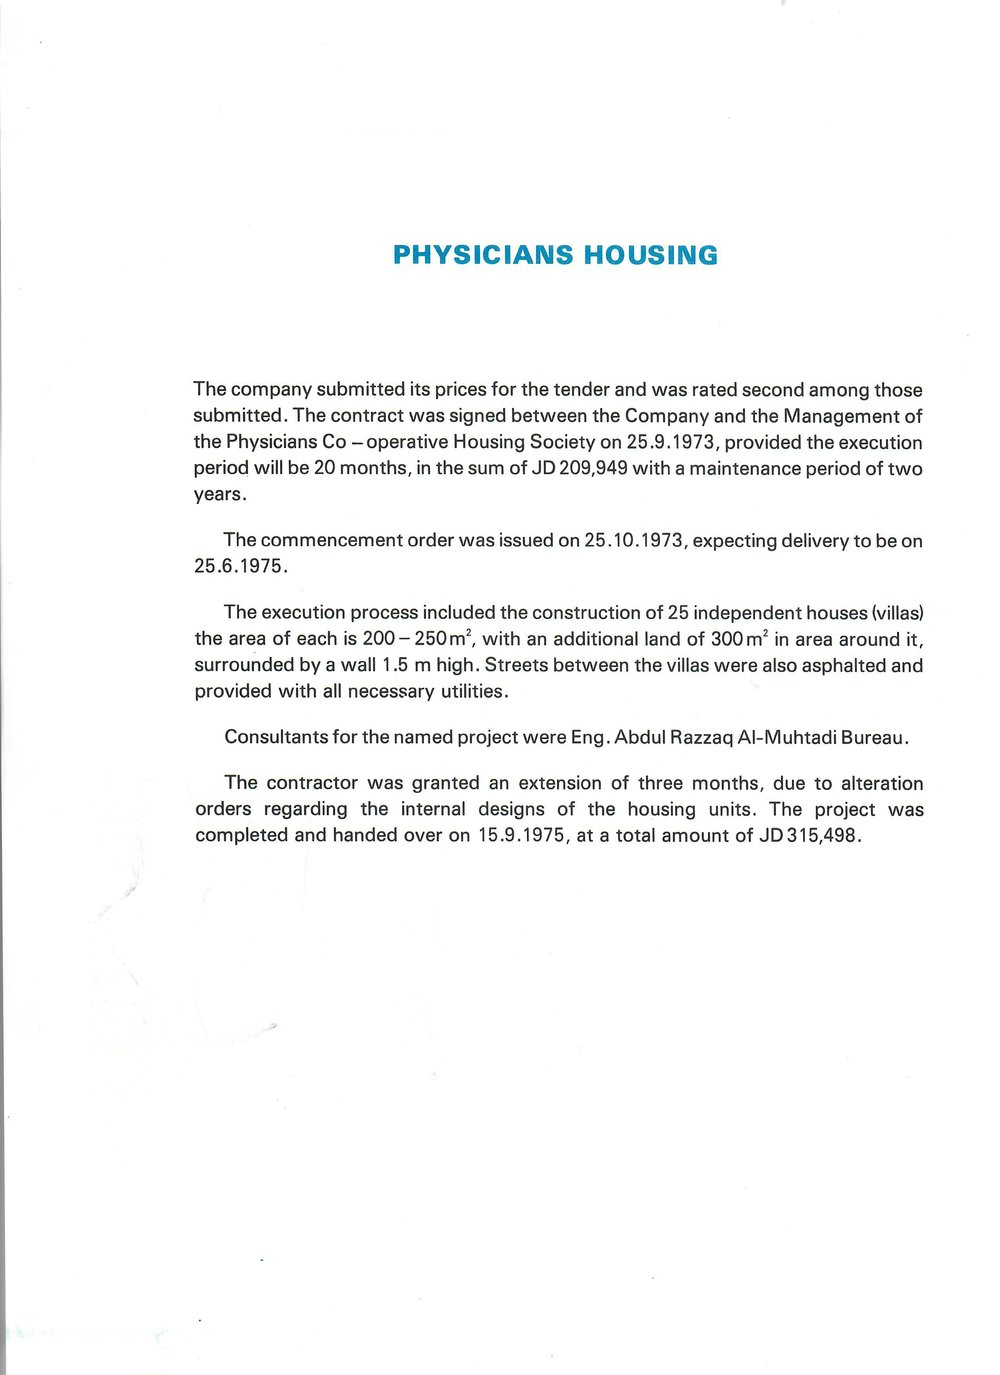 phys. housing texteng.jpeg